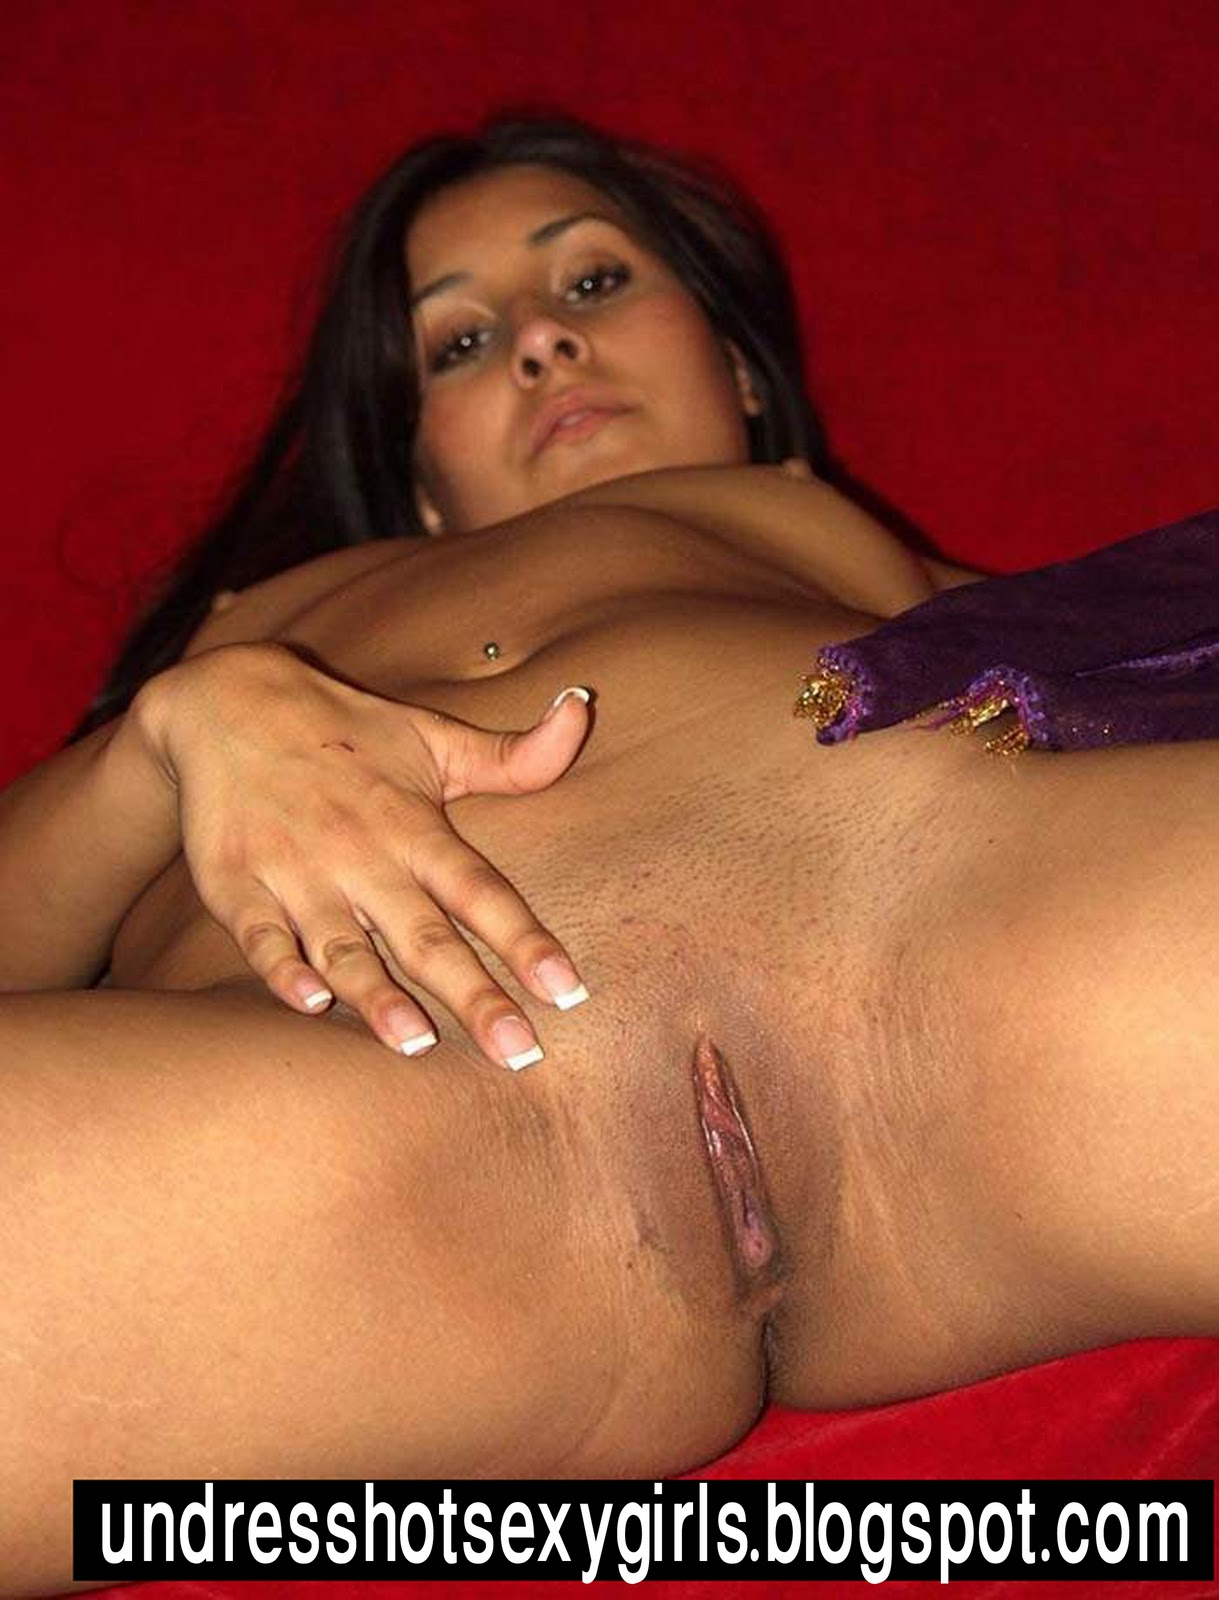 beautiful pakistani girls pussy